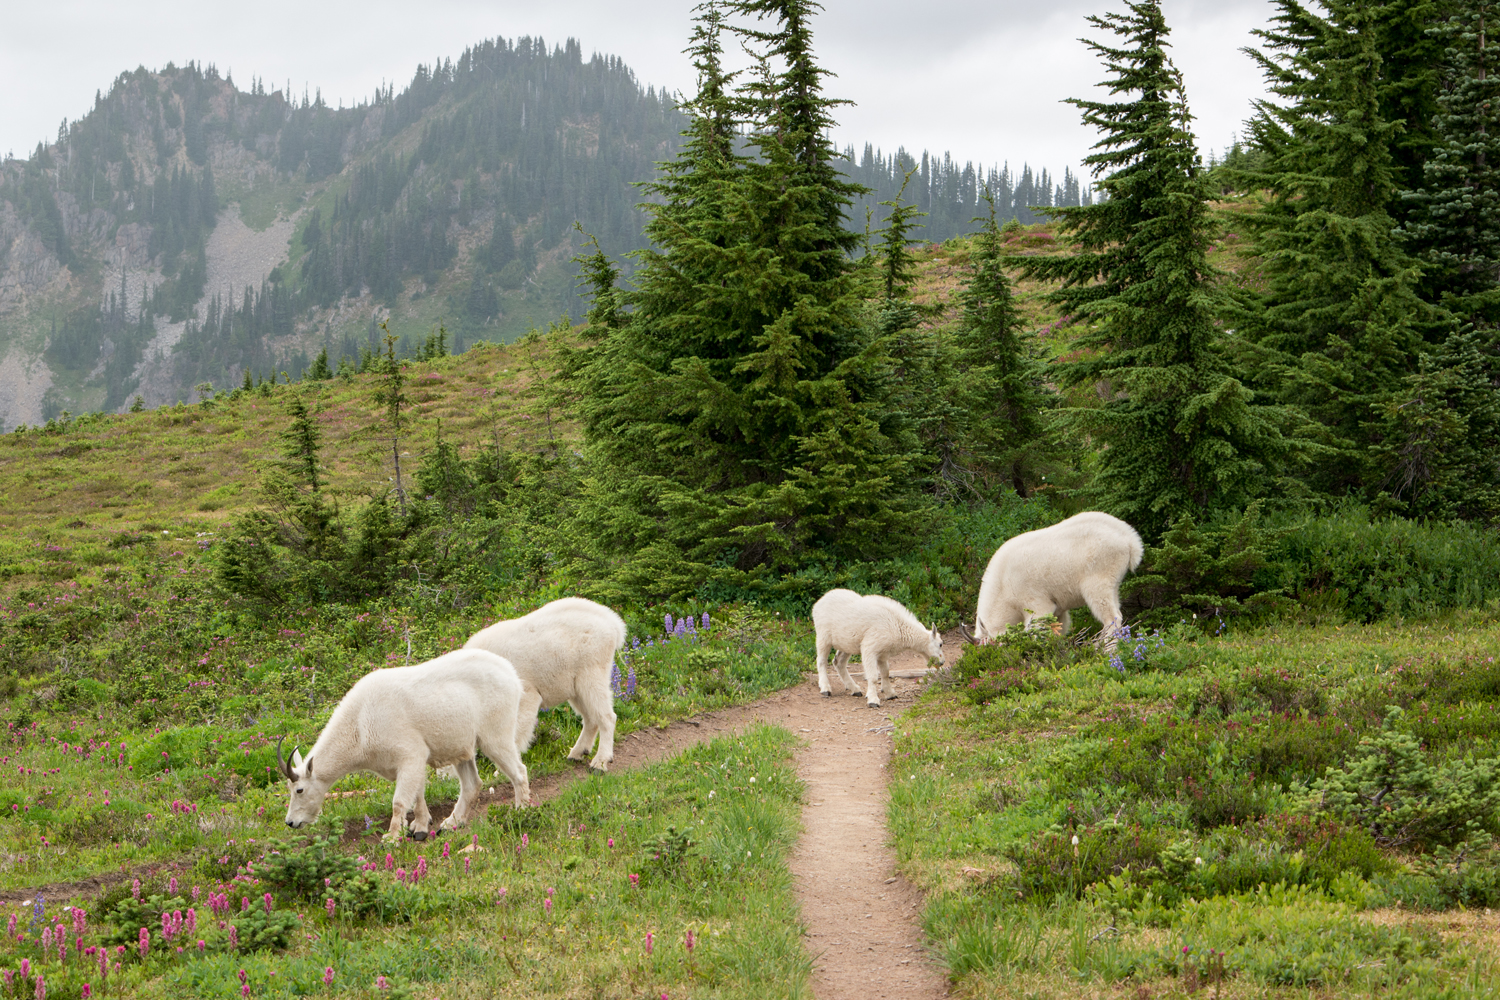 Wasim Muklashy Photography_Olympic National Park_High Divide Loop_049.jpg